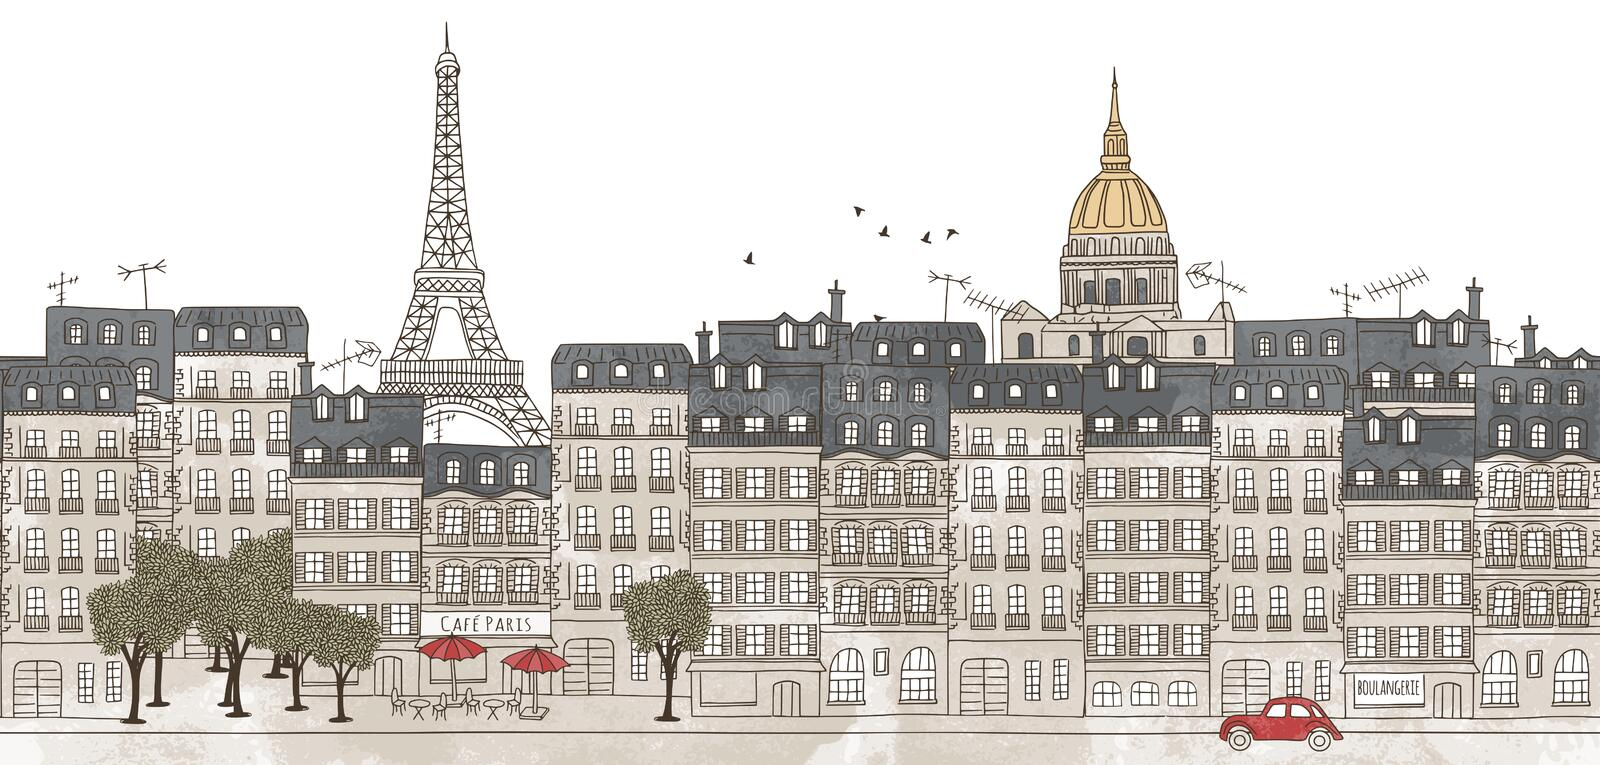 Paris, France - seamless banner of Paris's skyline. Seamless banner of Paris's skyline, hand drawn and digitally colored ink illustration royalty free illustration